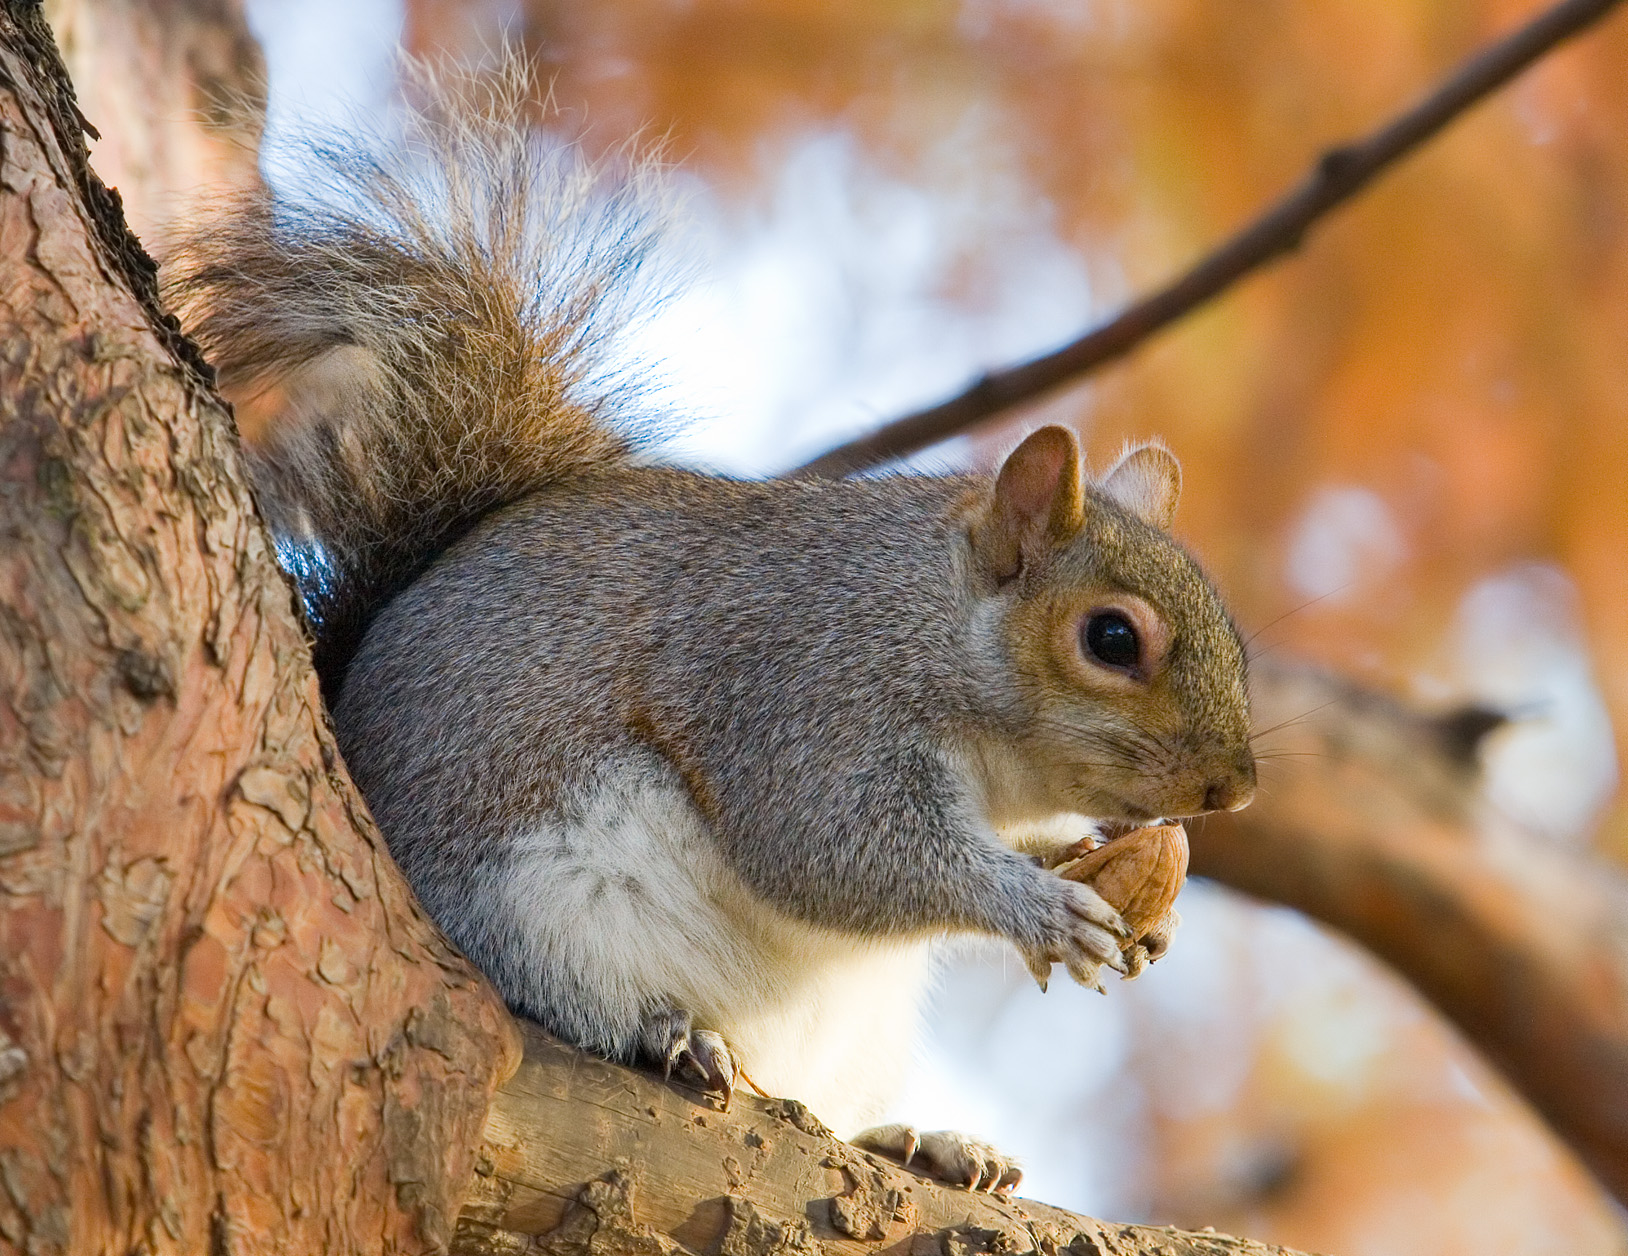 """File:Eastern Grey Squirrel in St James's Park, London - Nov 2006 edit.jpg"" by Diliff is licensed under CC BY-SA 3.0"